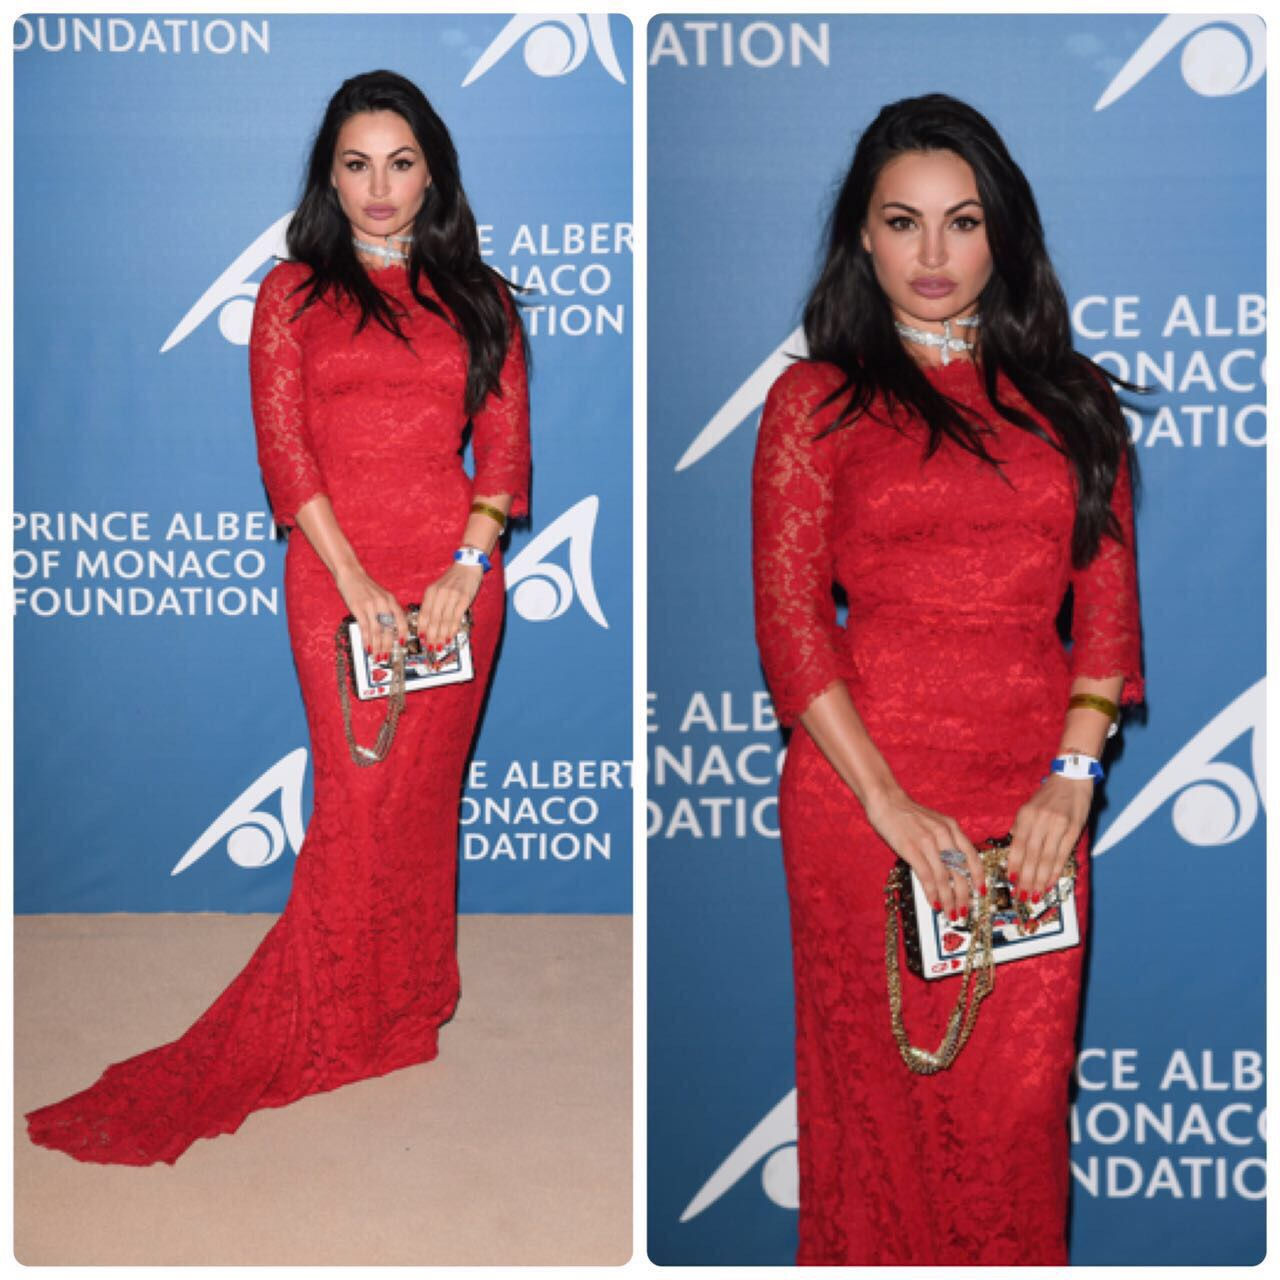 Emilia Kazandjian at the Charity Ball of Prince Albert II in Monaco.